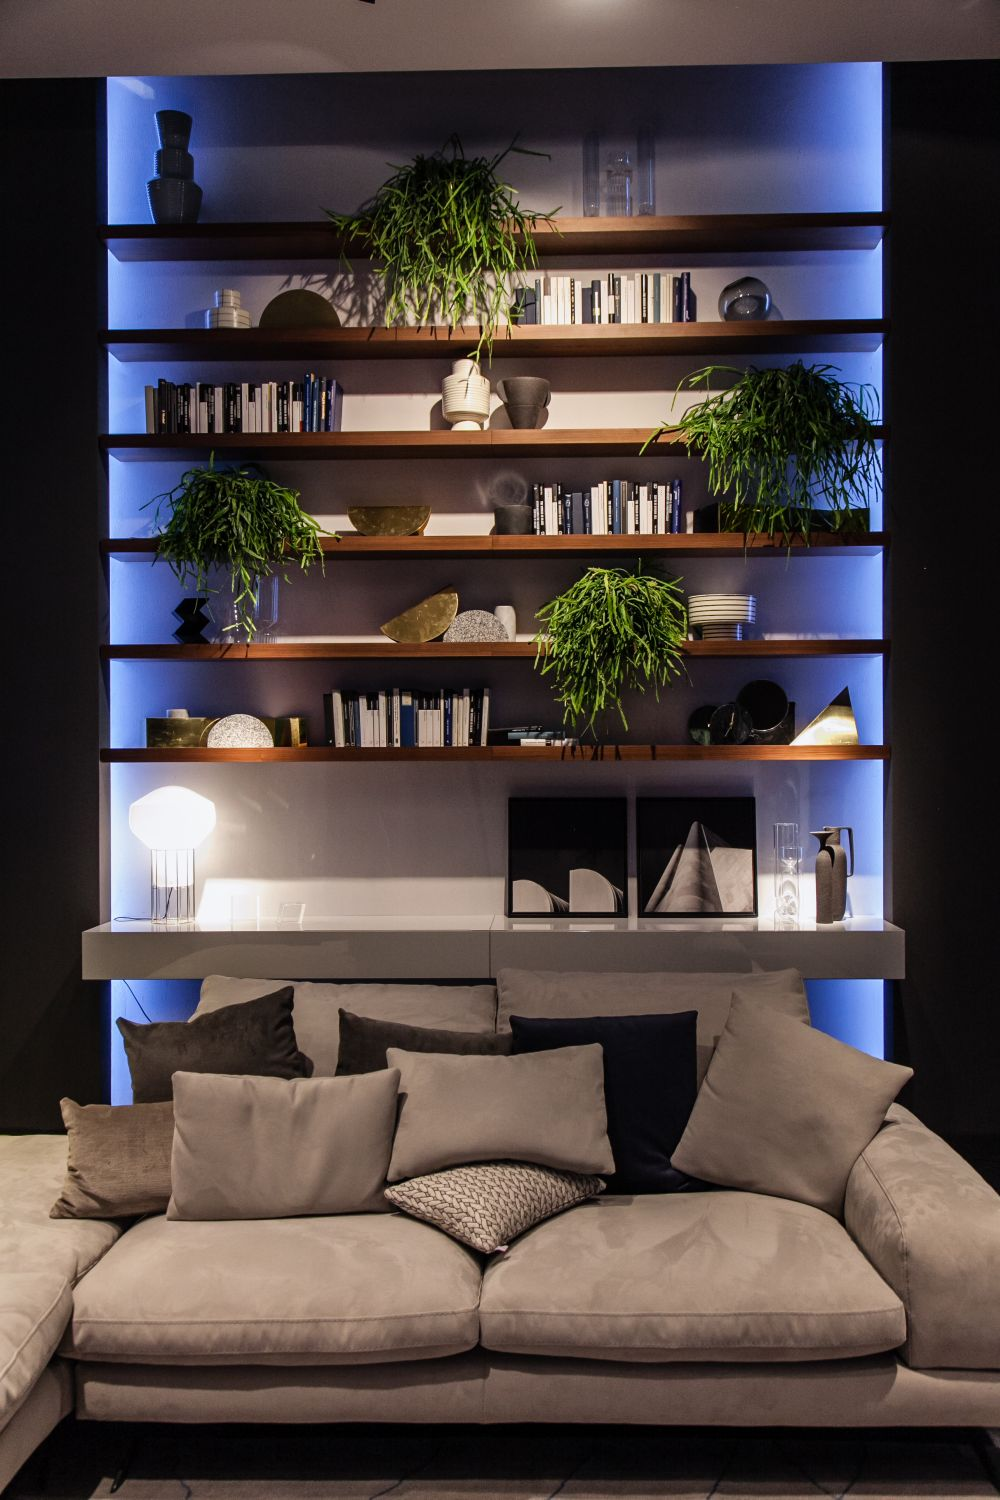 Mix and match the items that you display on a shelf for a bit of diversity. For example, put books next to planters